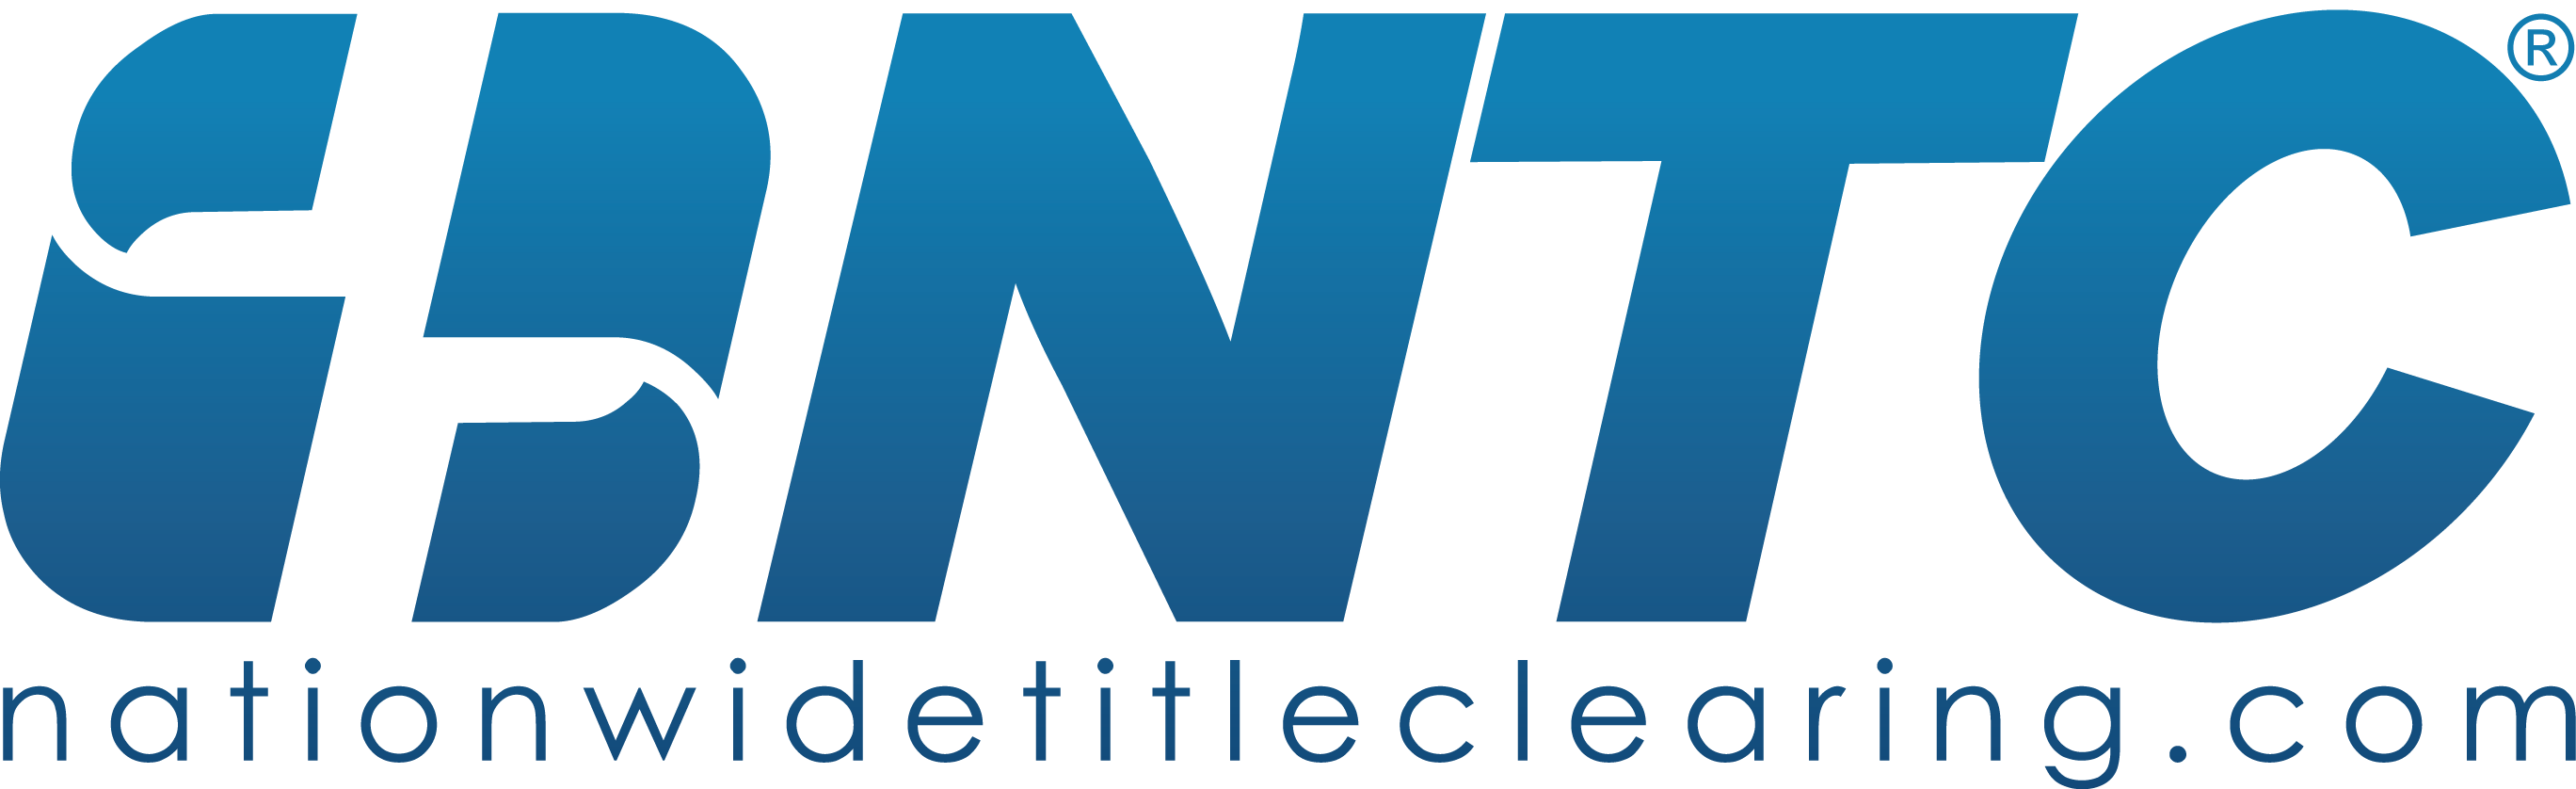 Nationwide Title Clearing, Inc. logo